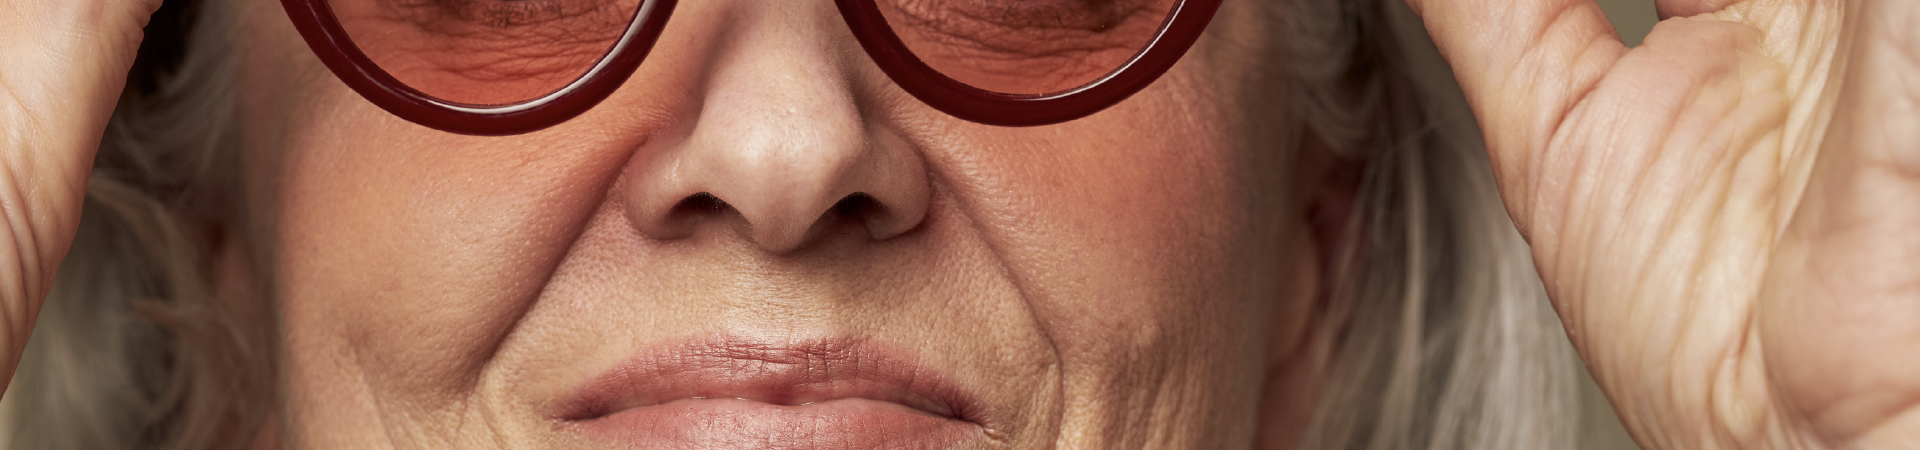 A close up on a face. An older woman's mouth and nose are the focus, her hands and rose-tinted glasses are slightly out of frame.